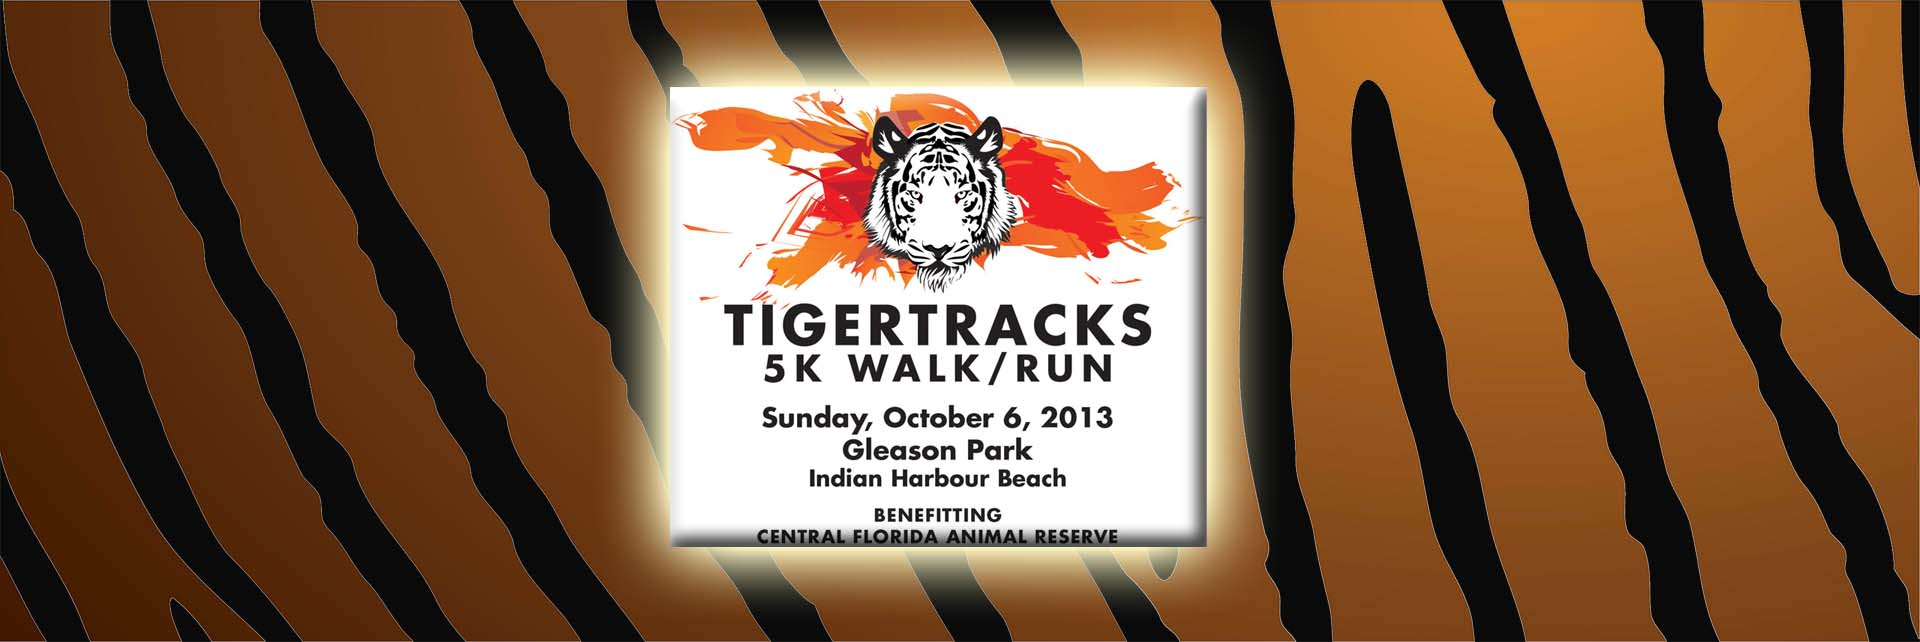 TigerTracks5K-Feature2